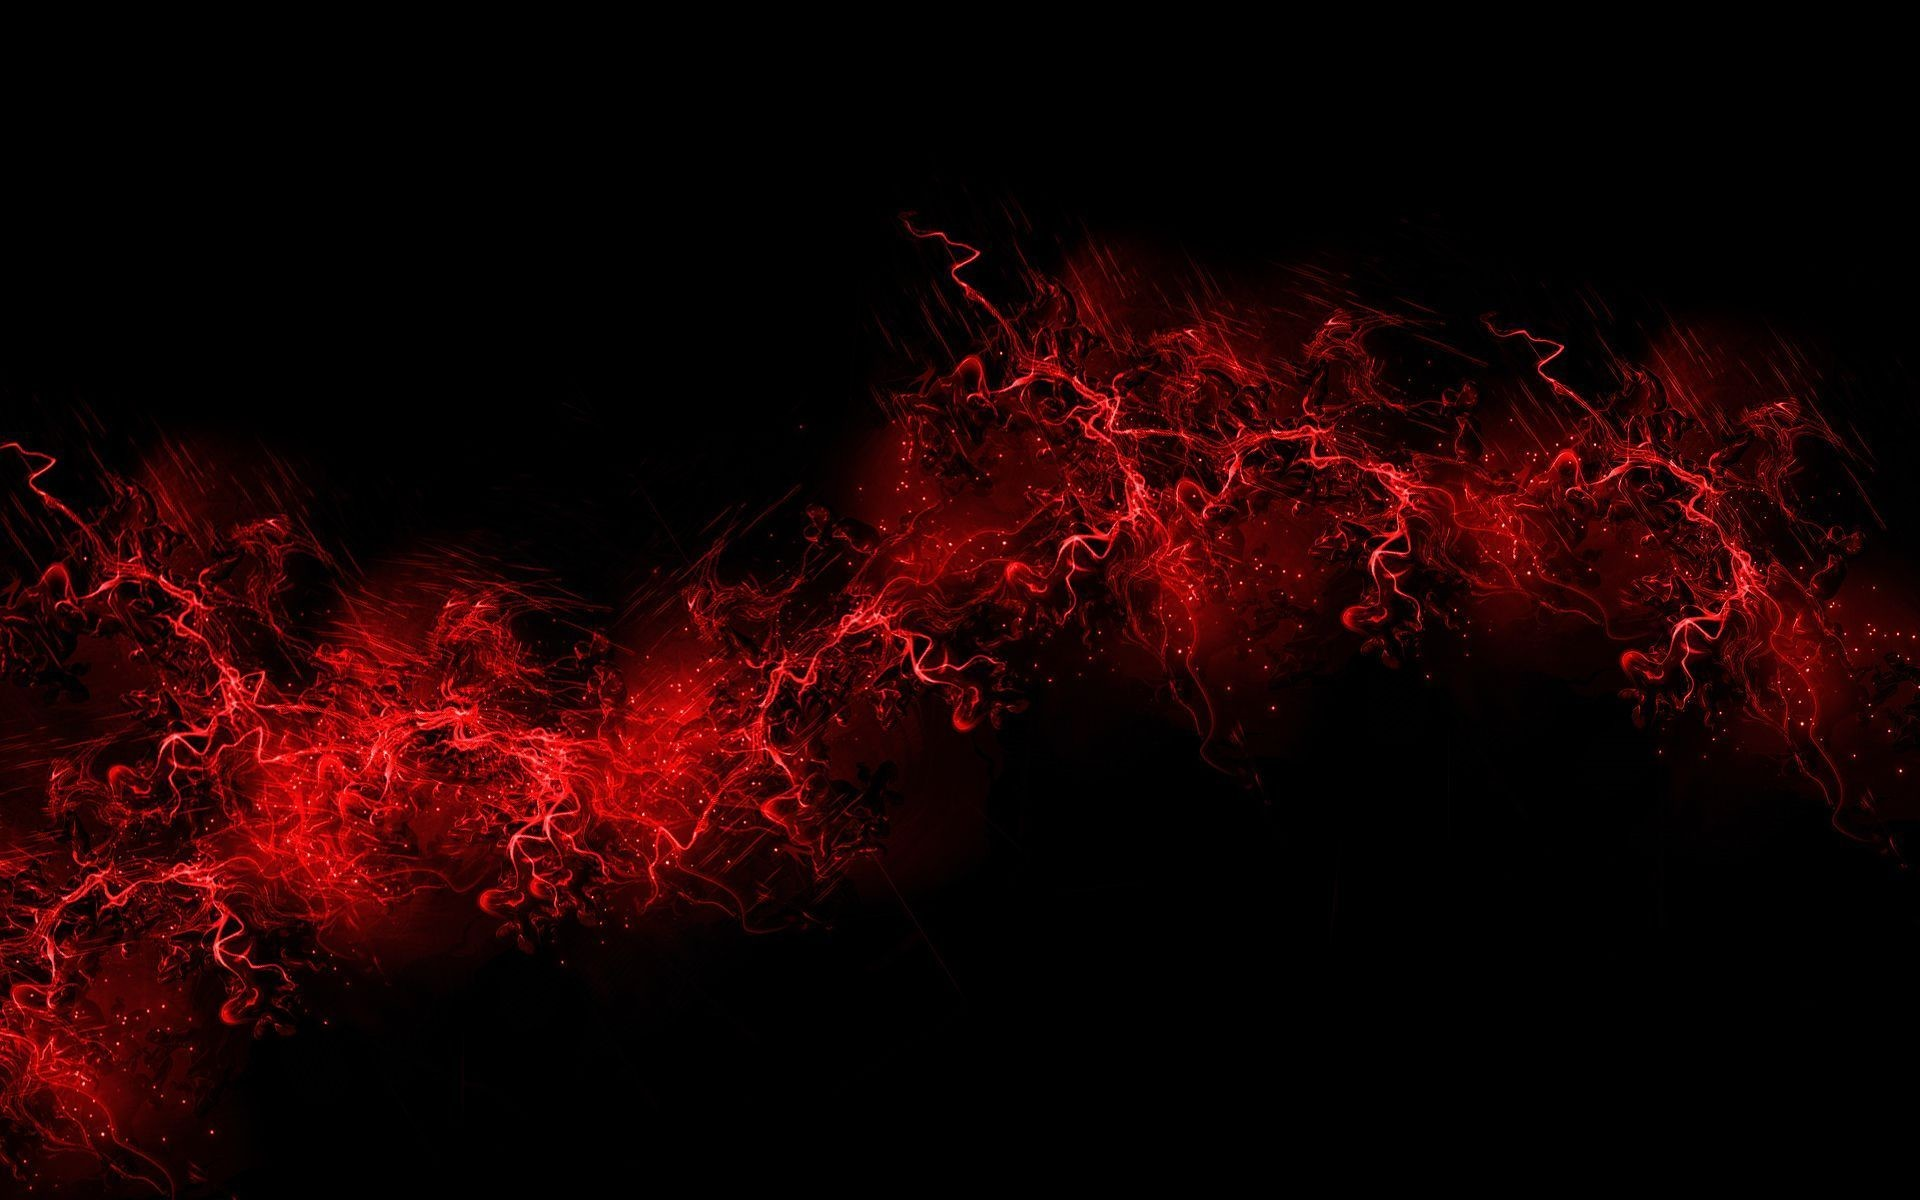 black background free hd download : Cool Red And Black Backgrounds .